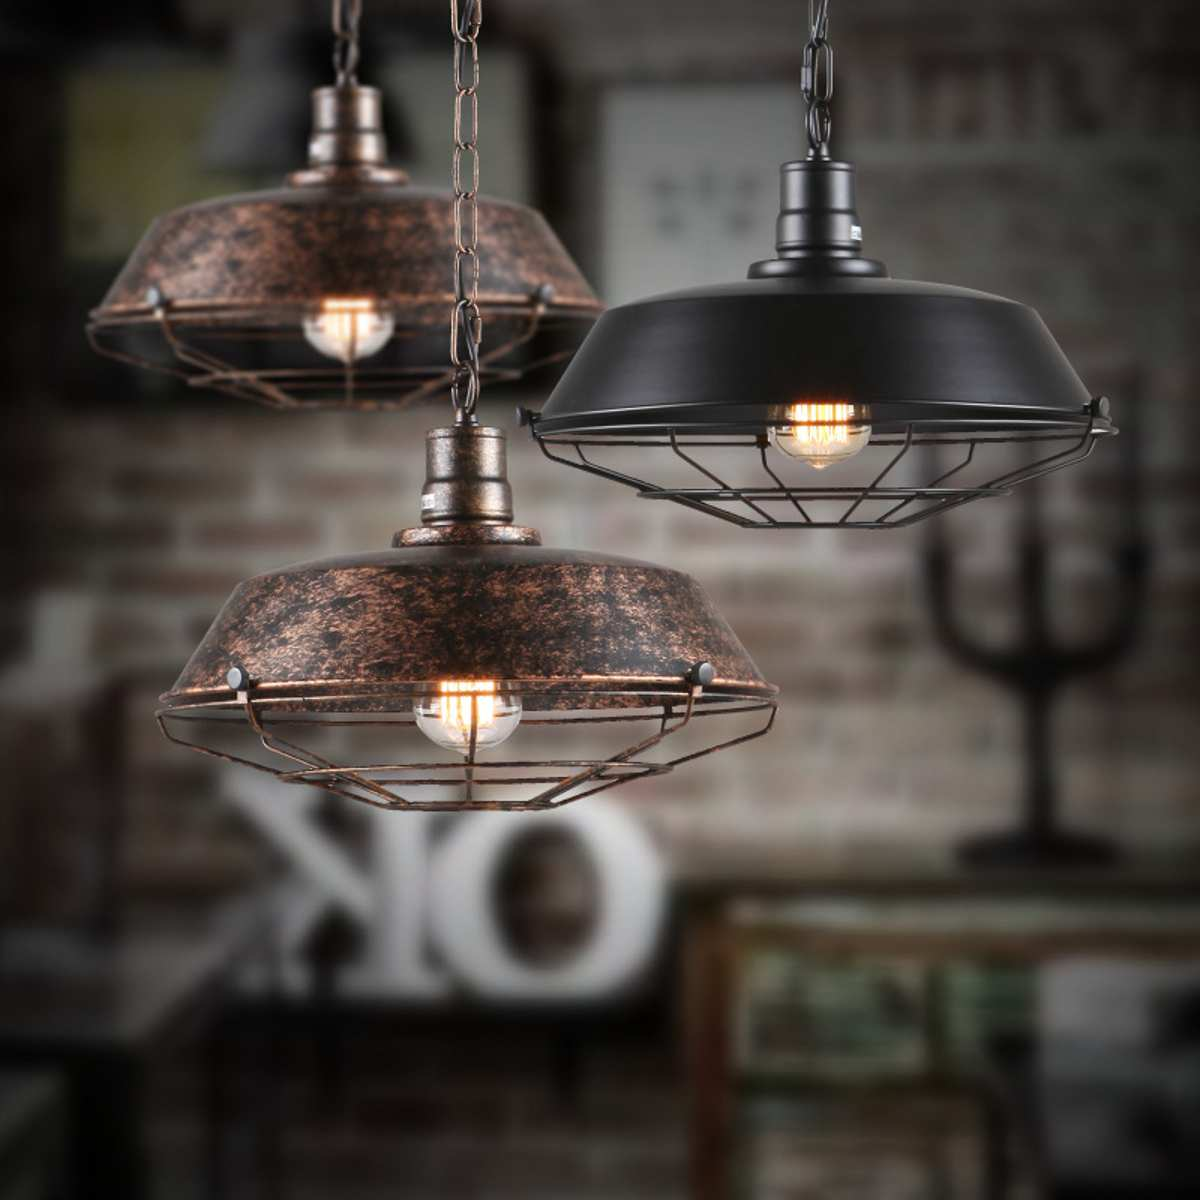 Vintage Industrial Rustic Flush Mount Ceiling Light Metal Lamp Fixture American-style Village Style Retro Light Lamps